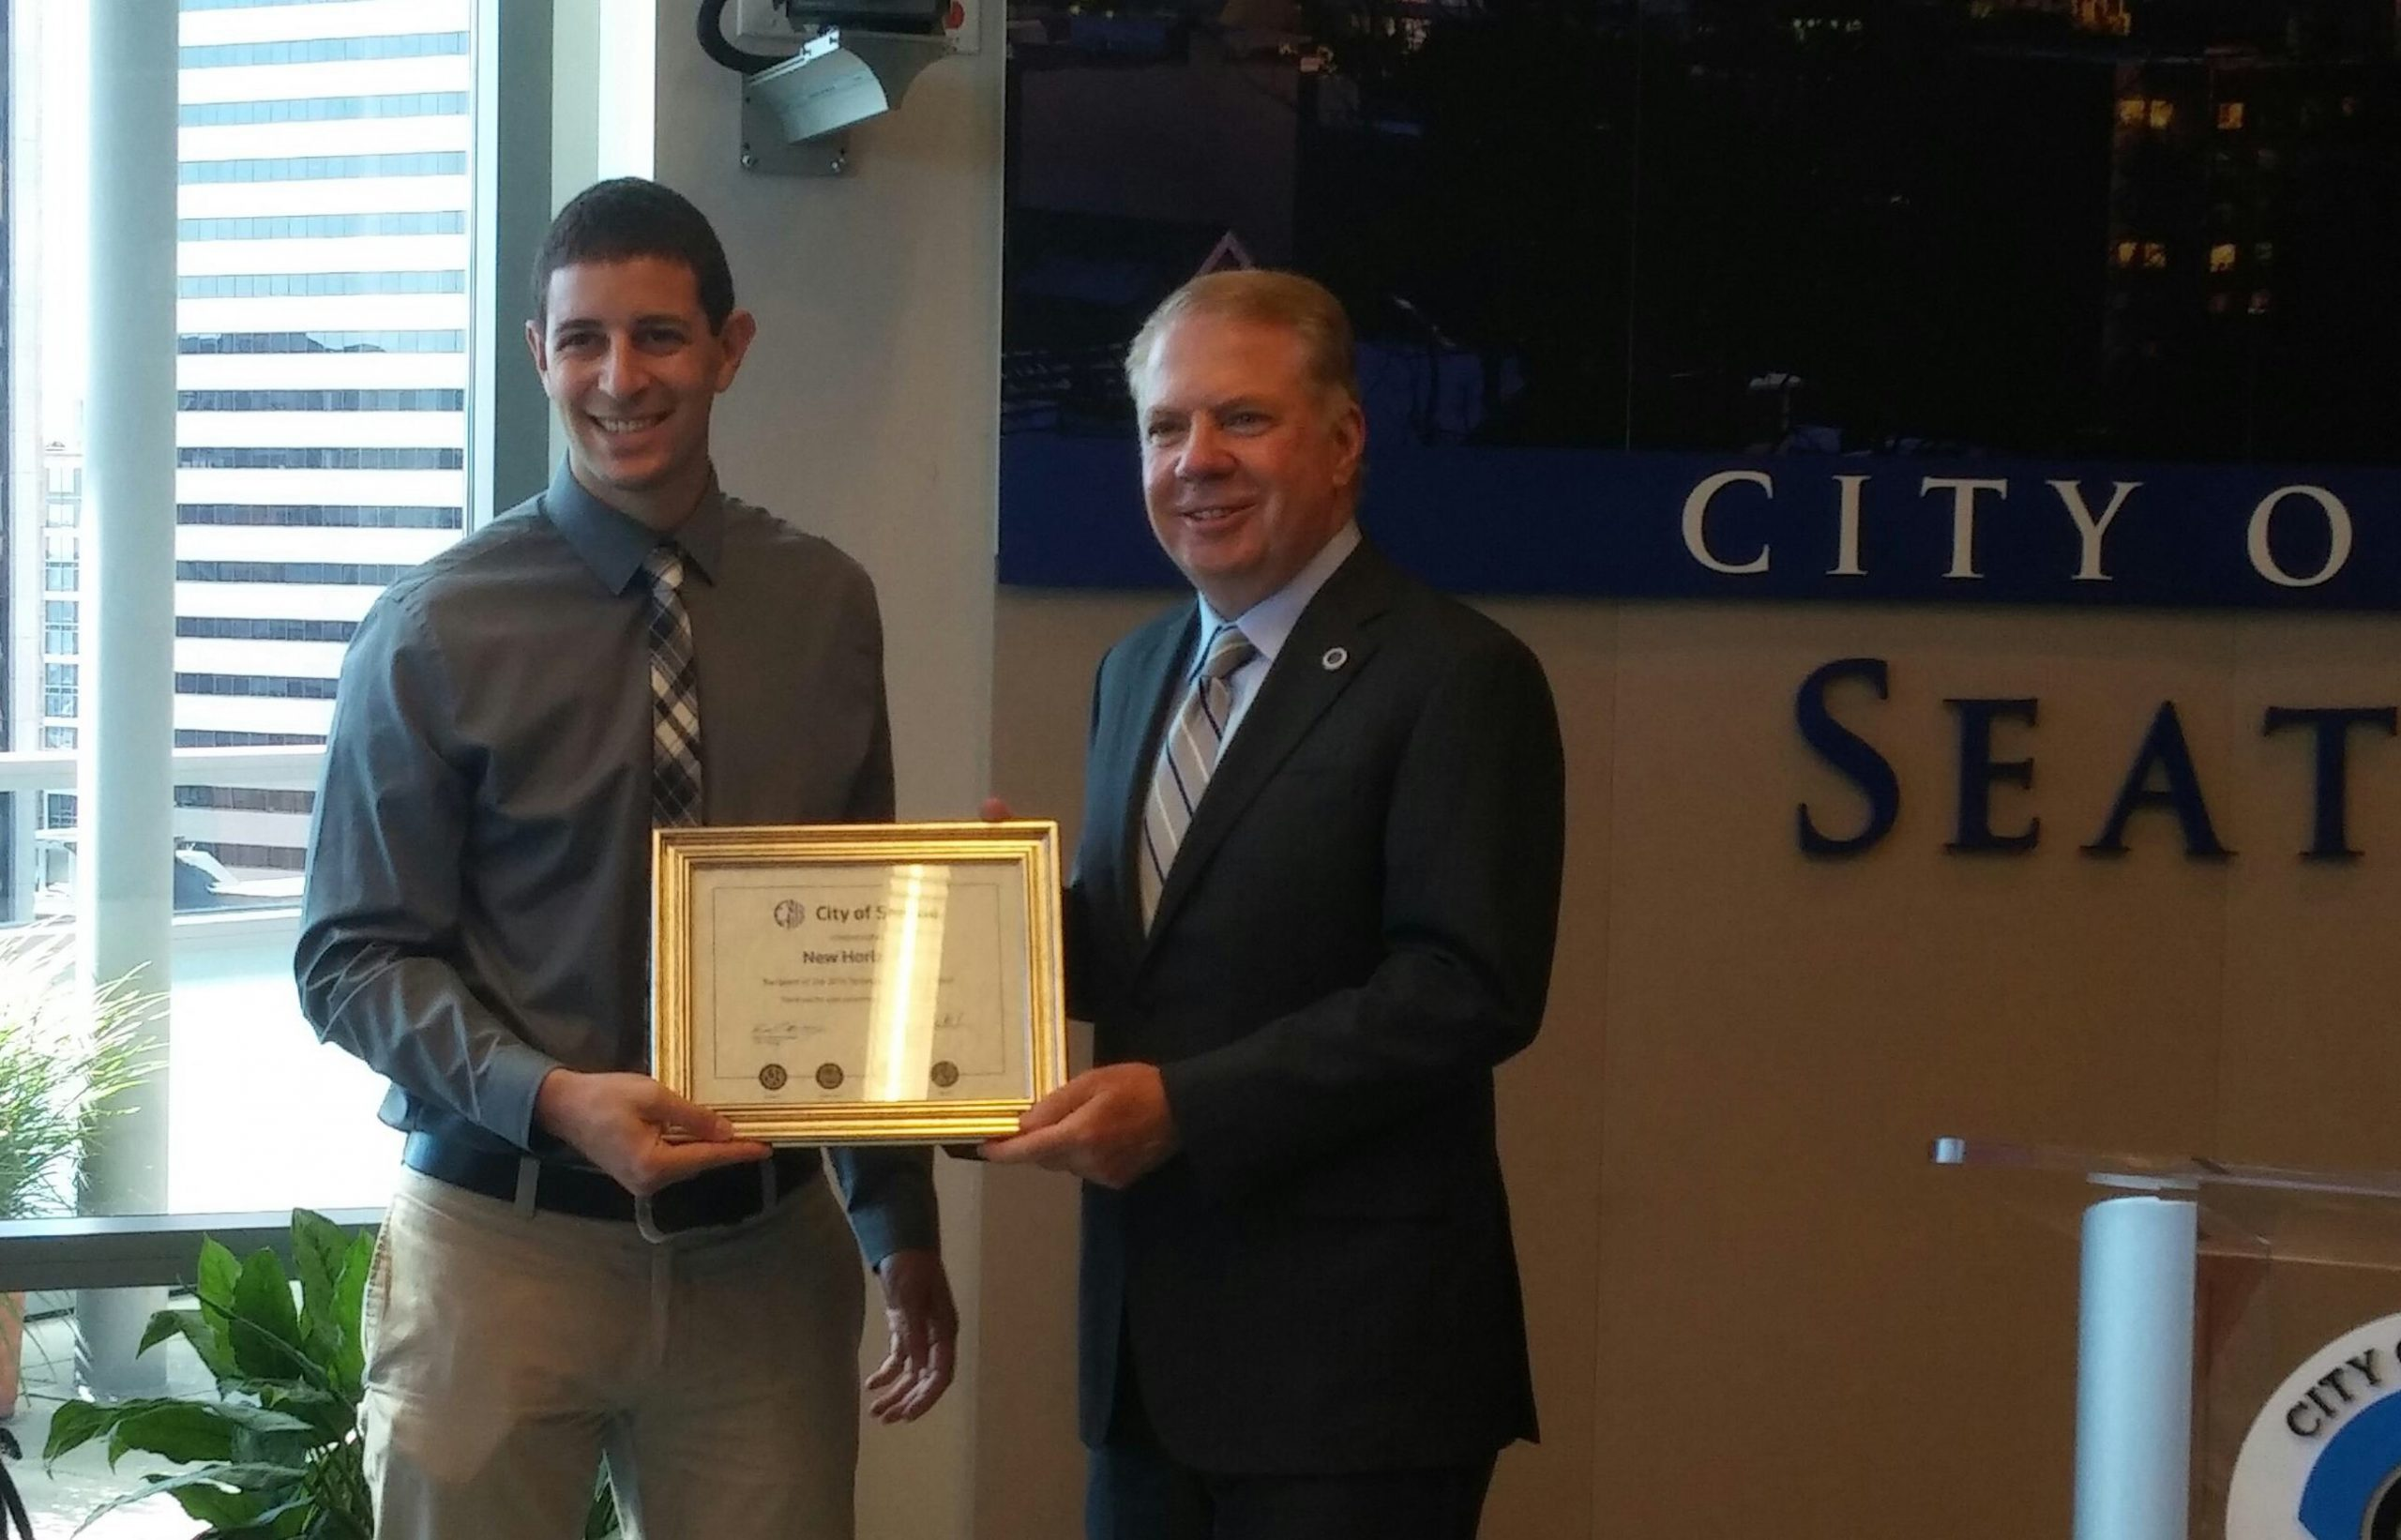 New Horizons Awarded City of Seattle's $10,000 Technology Grant